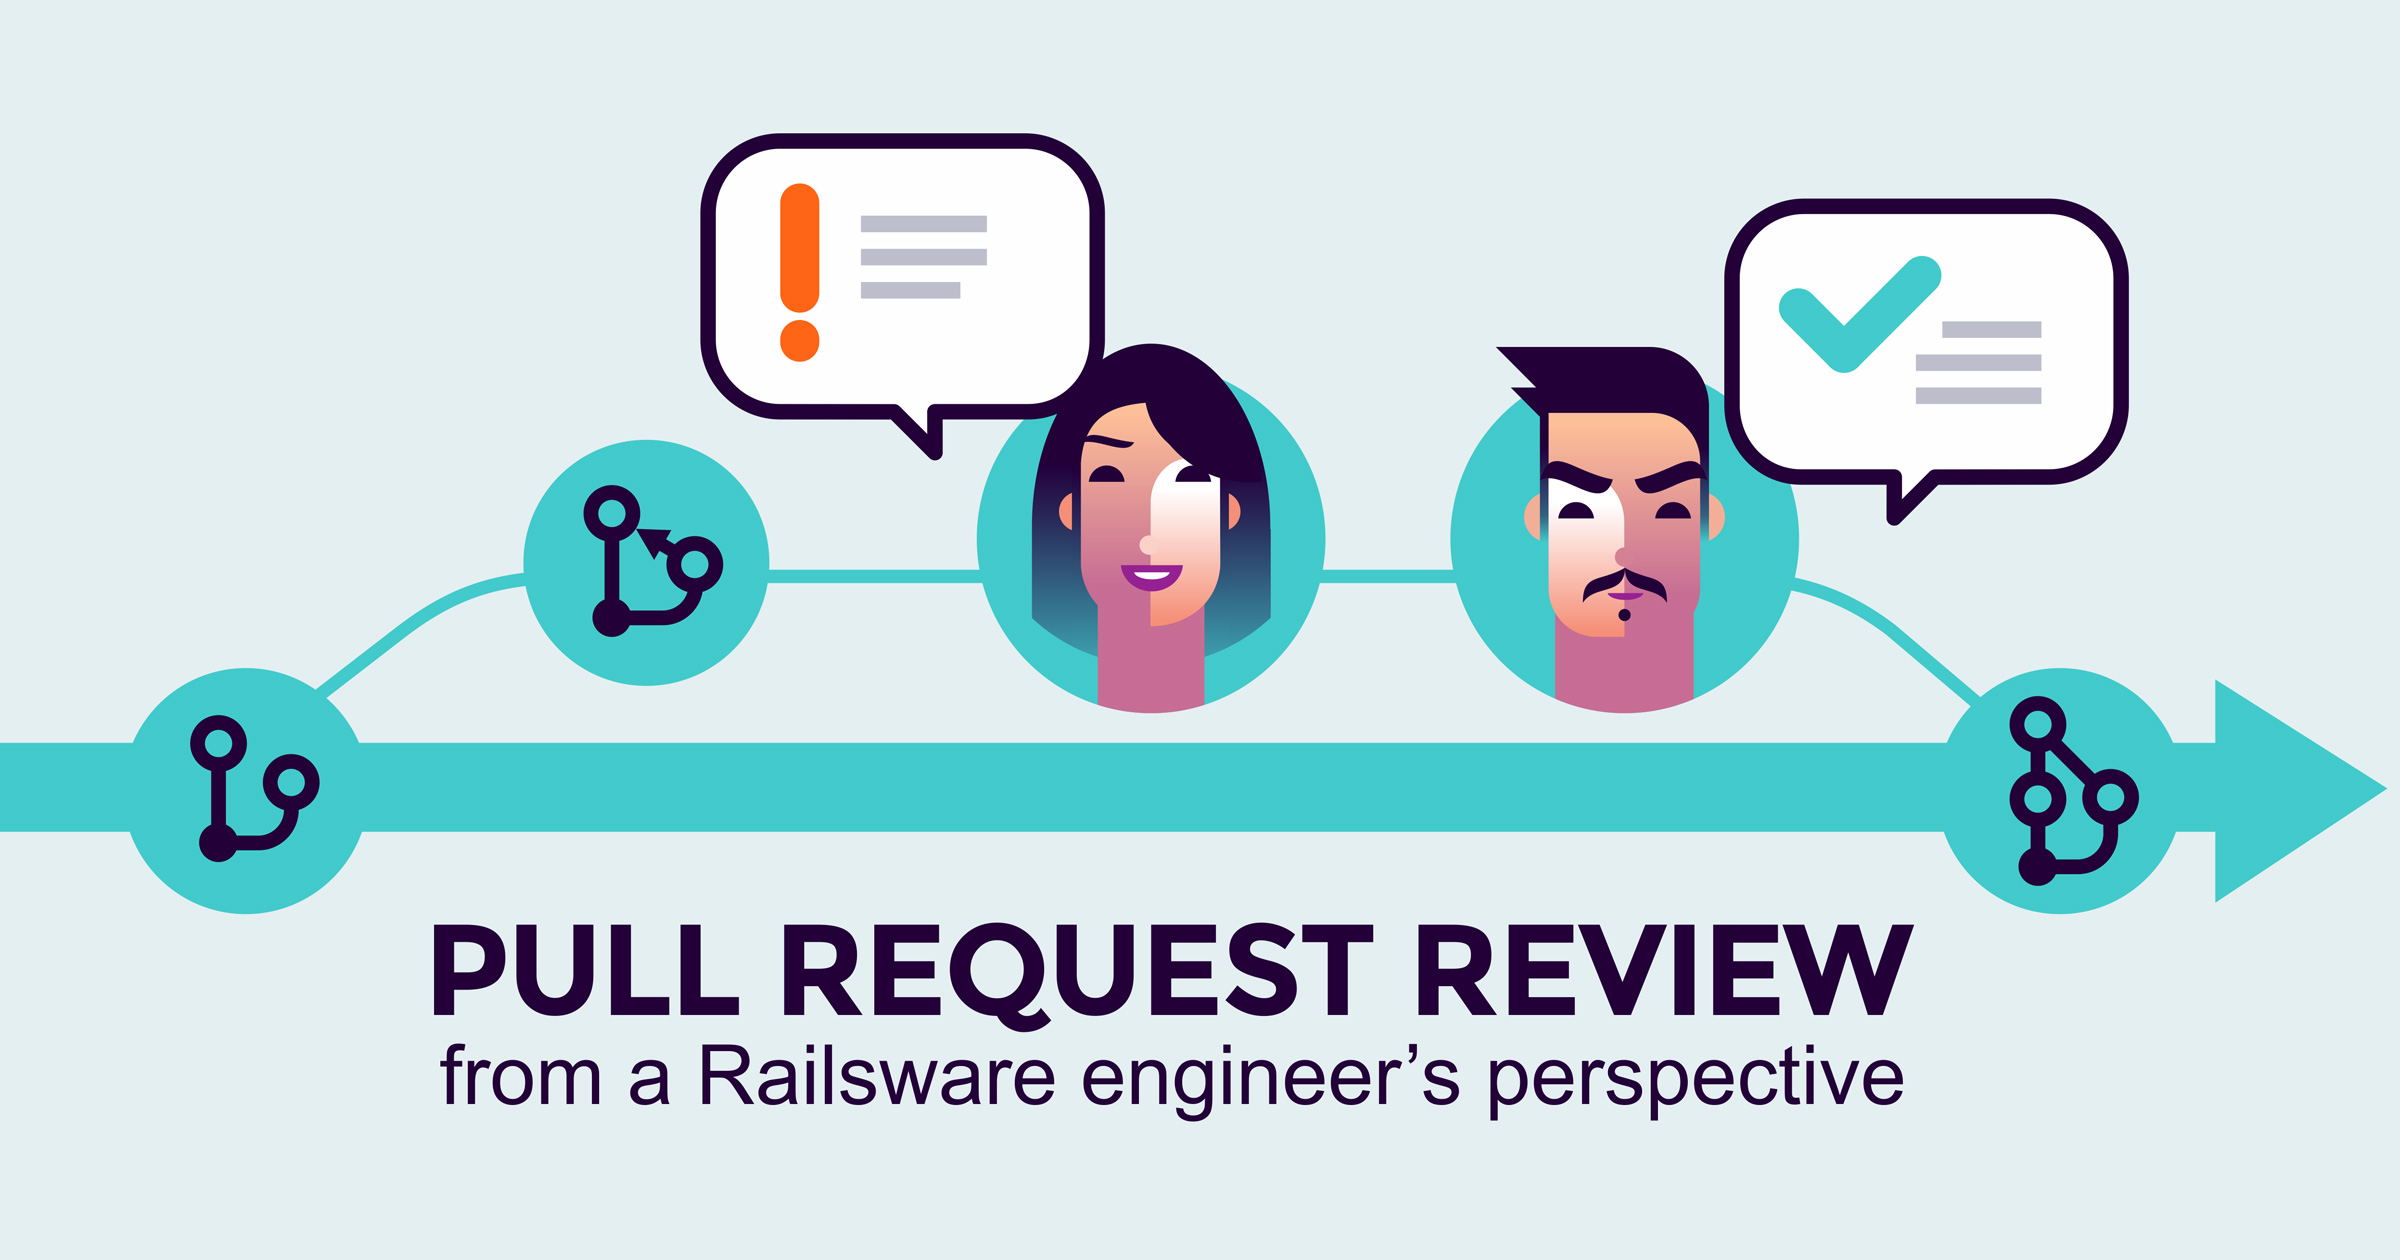 Pull request review process